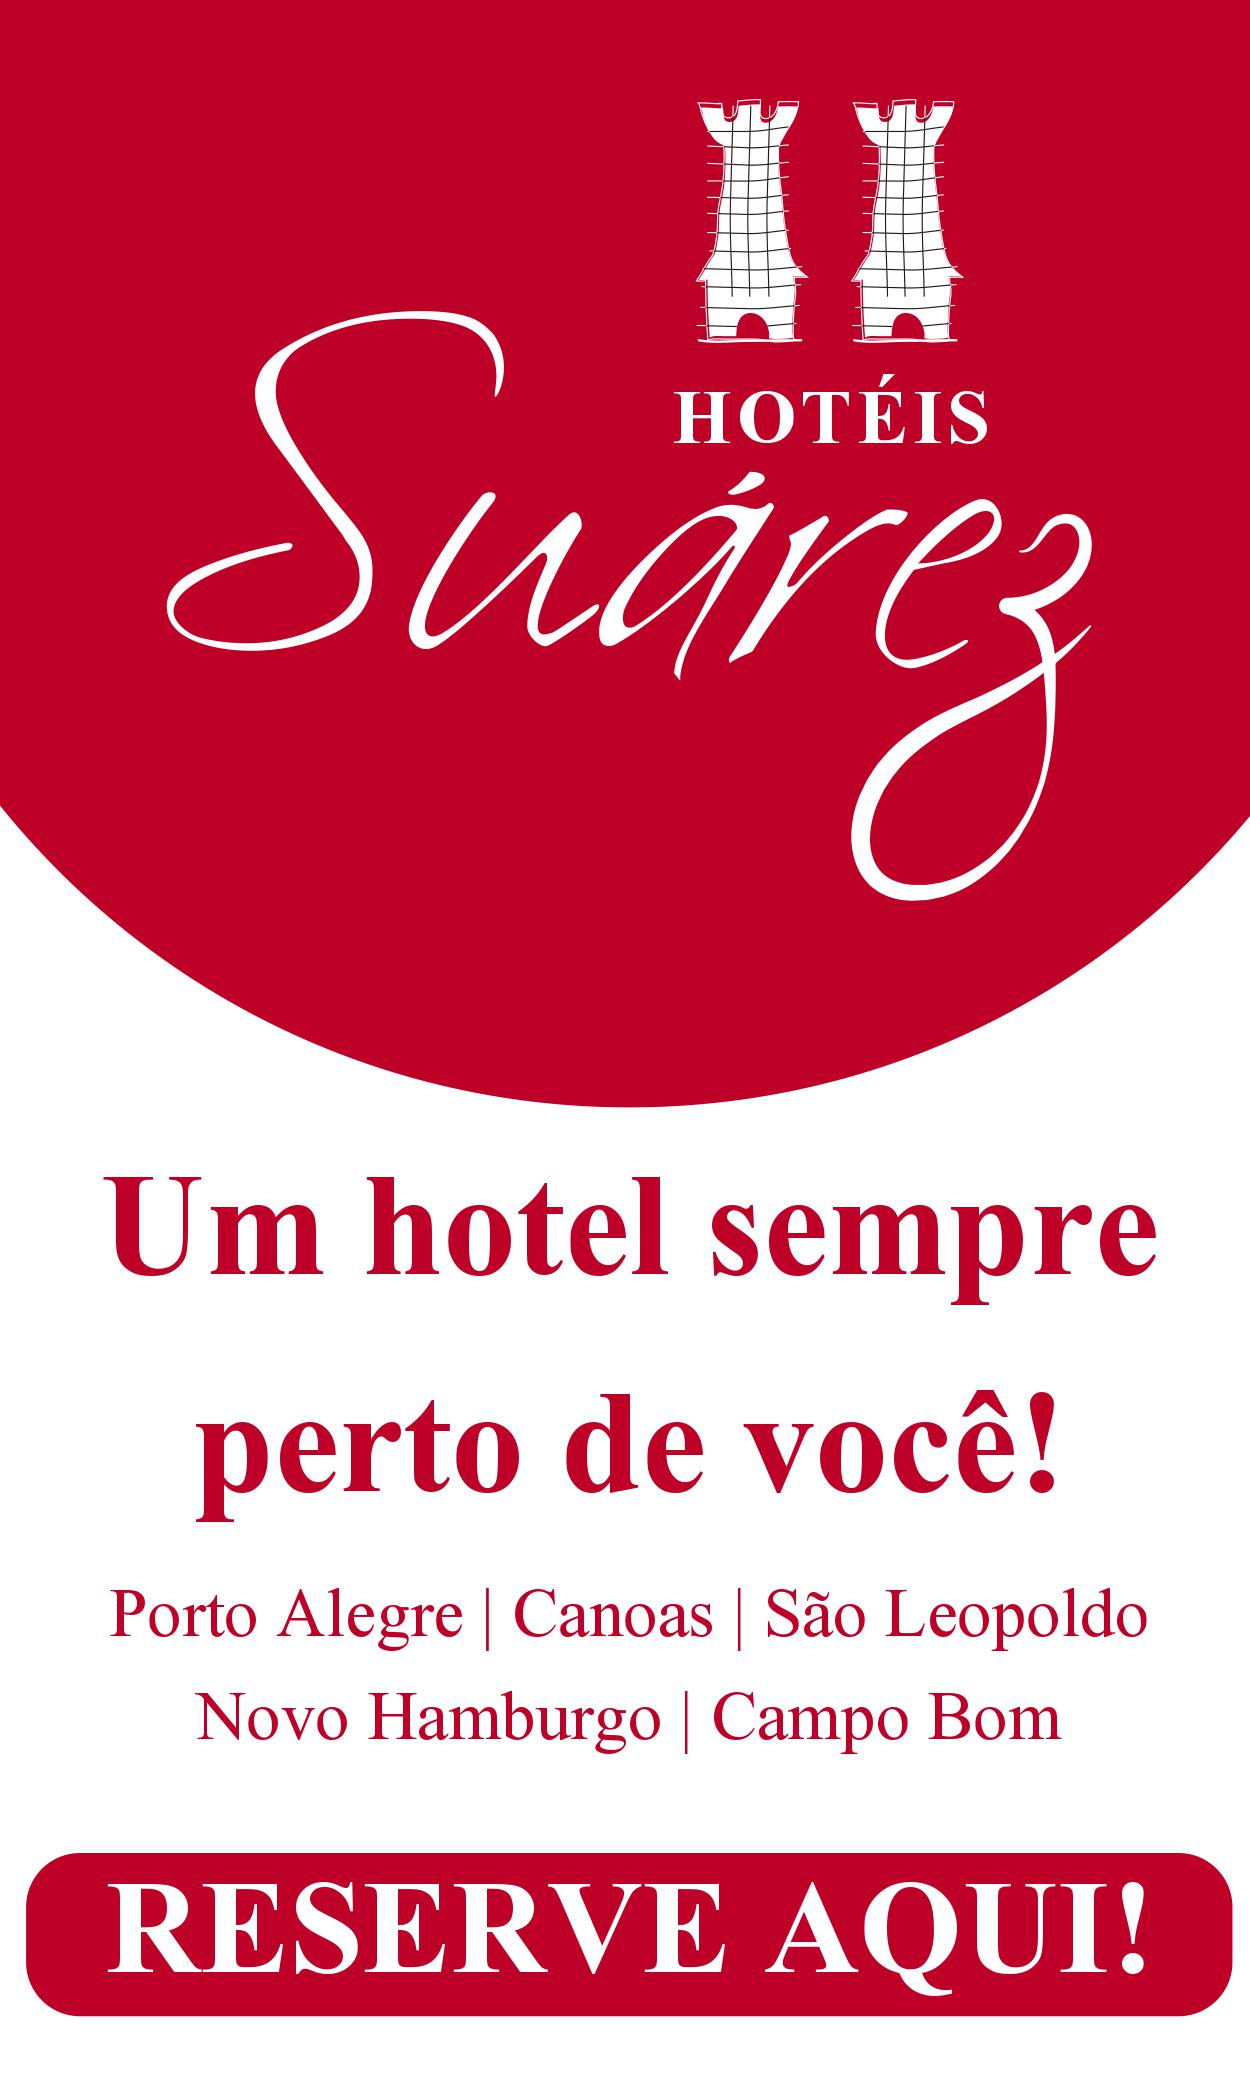 Hospede-se na Rede de Hotéis Suárez, um hotel sempre perto de você! CLIQUE AQUI PRA FAZER SUA RESERVA